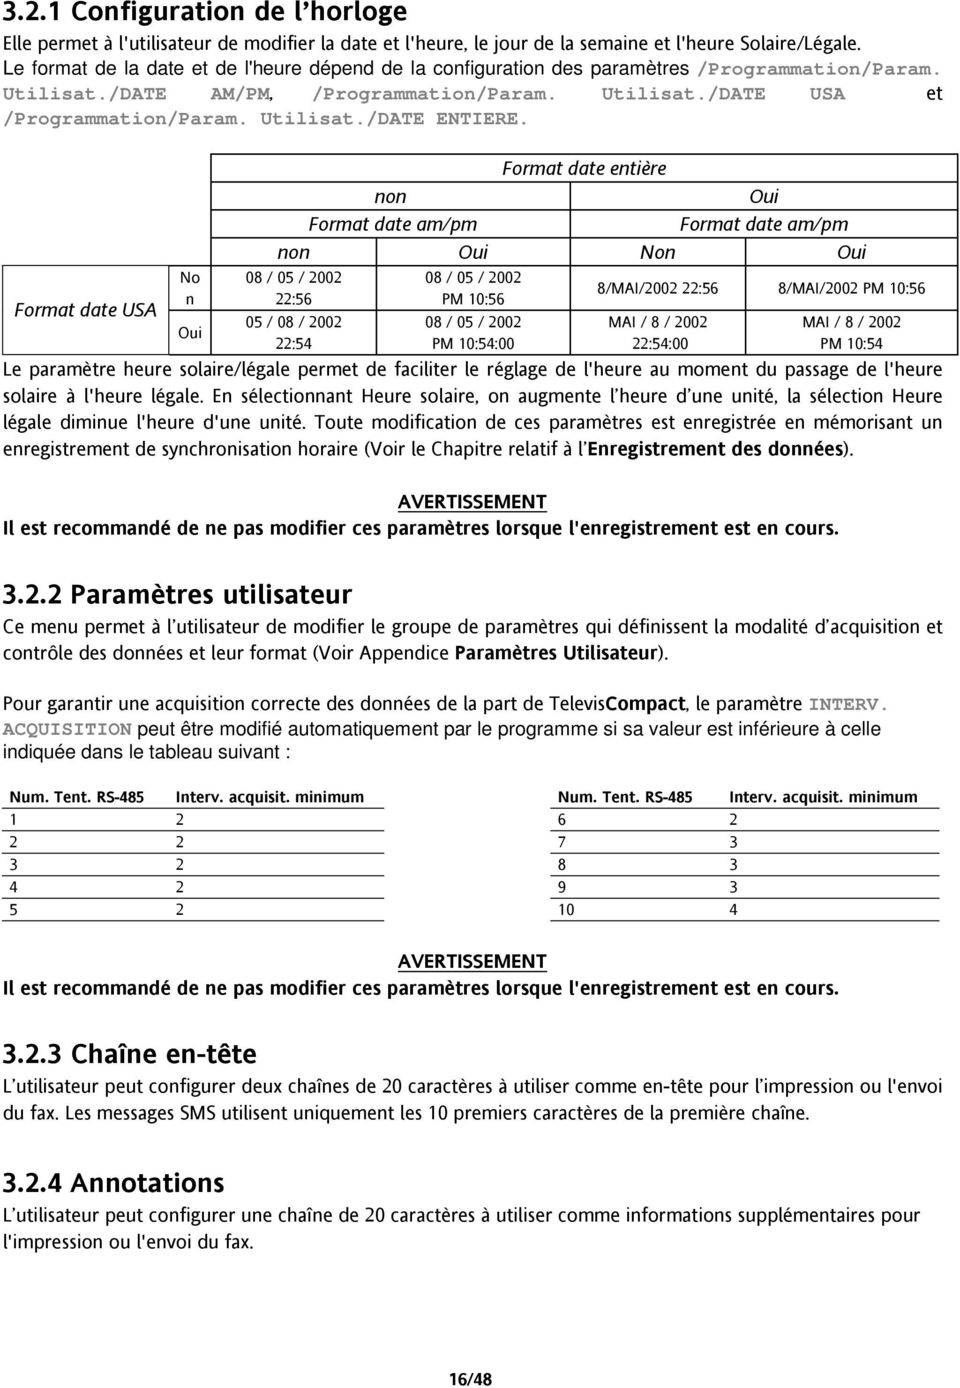 Format date USA No n Oui Format date entière non Oui Format date am/pm Format date am/pm non Oui Non Oui 08 / 05 / 2002 22:56 05 / 08 / 2002 22:54 08 / 05 / 2002 PM 10:56 08 / 05 / 2002 PM 10:54:00